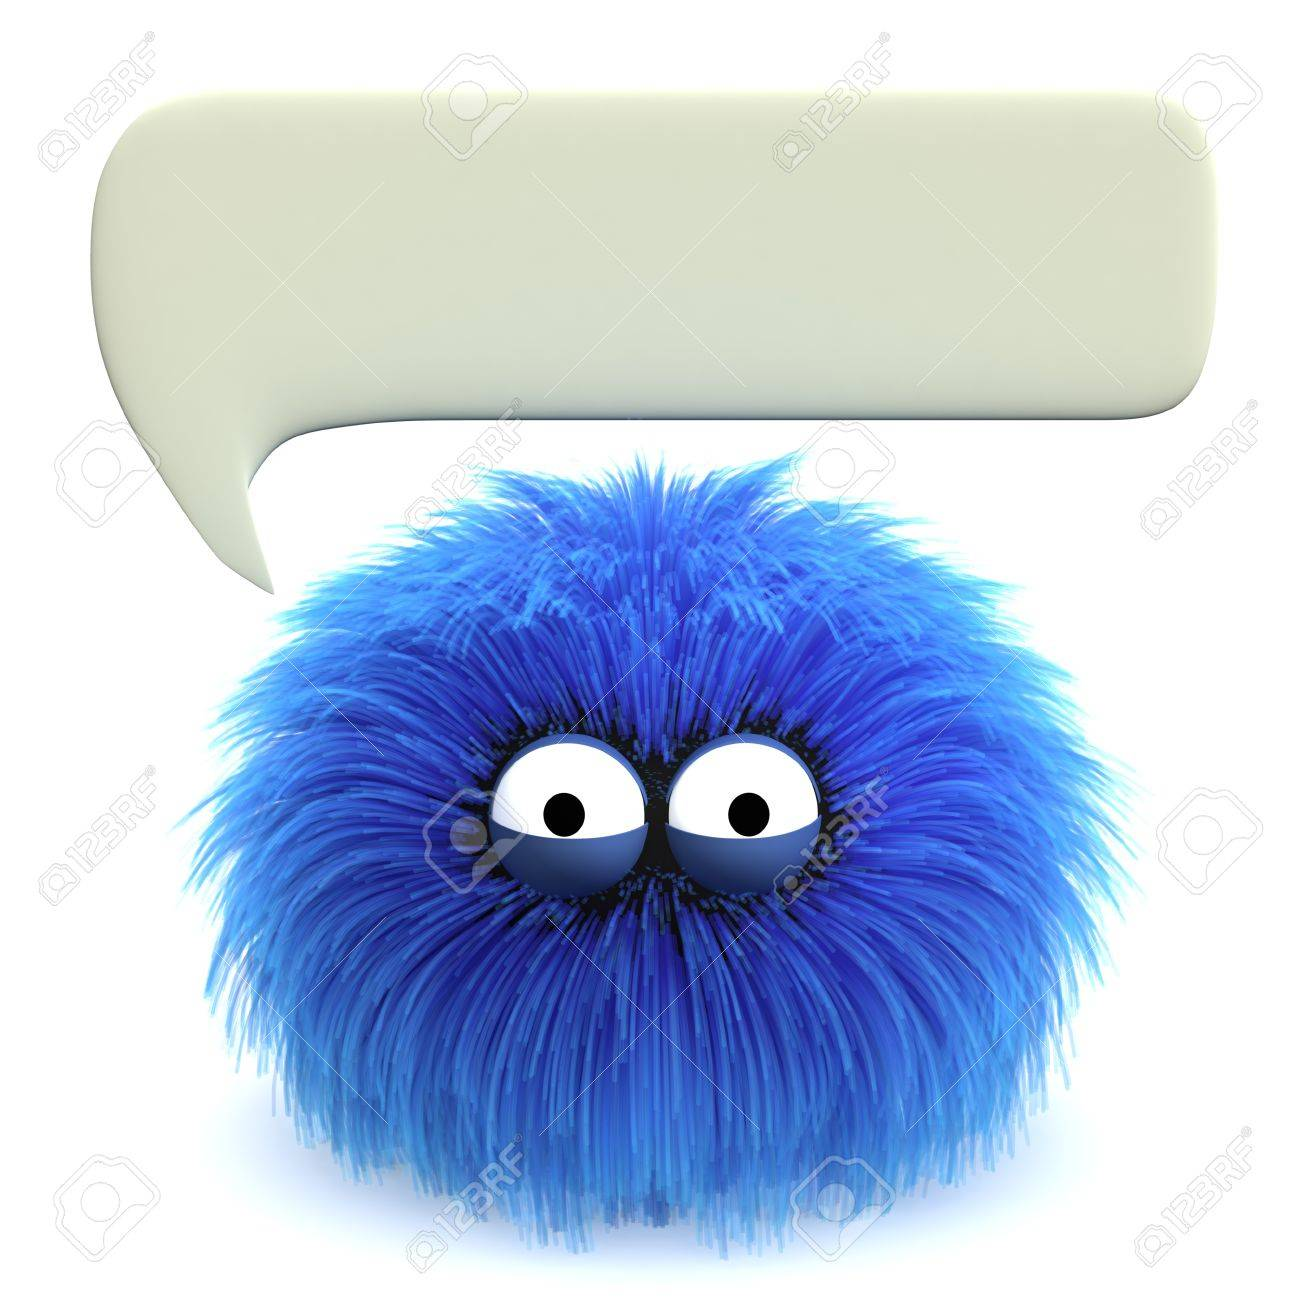 Furbul CG character with a blank speech bubble above his head Stock Photo - 10734911